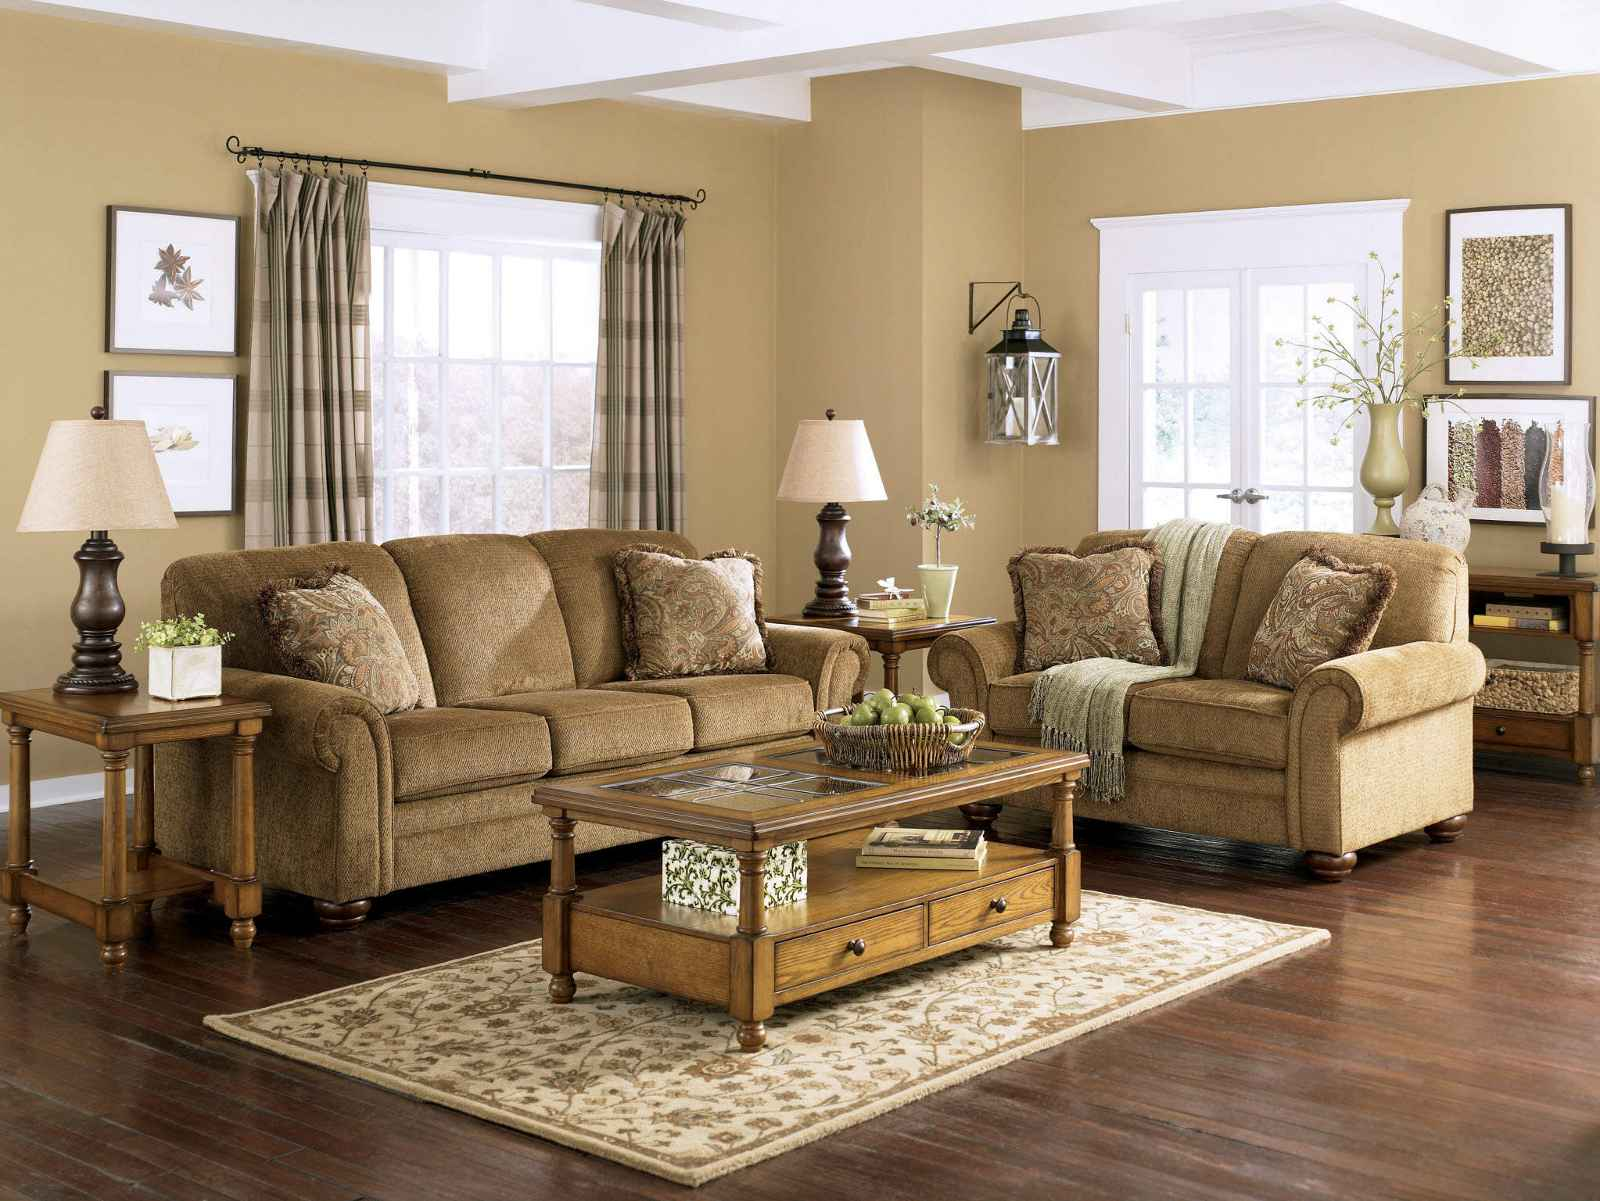 Incredible Home Living Room Furniture Ideas 1600 x 1201 · 156 kB · jpeg